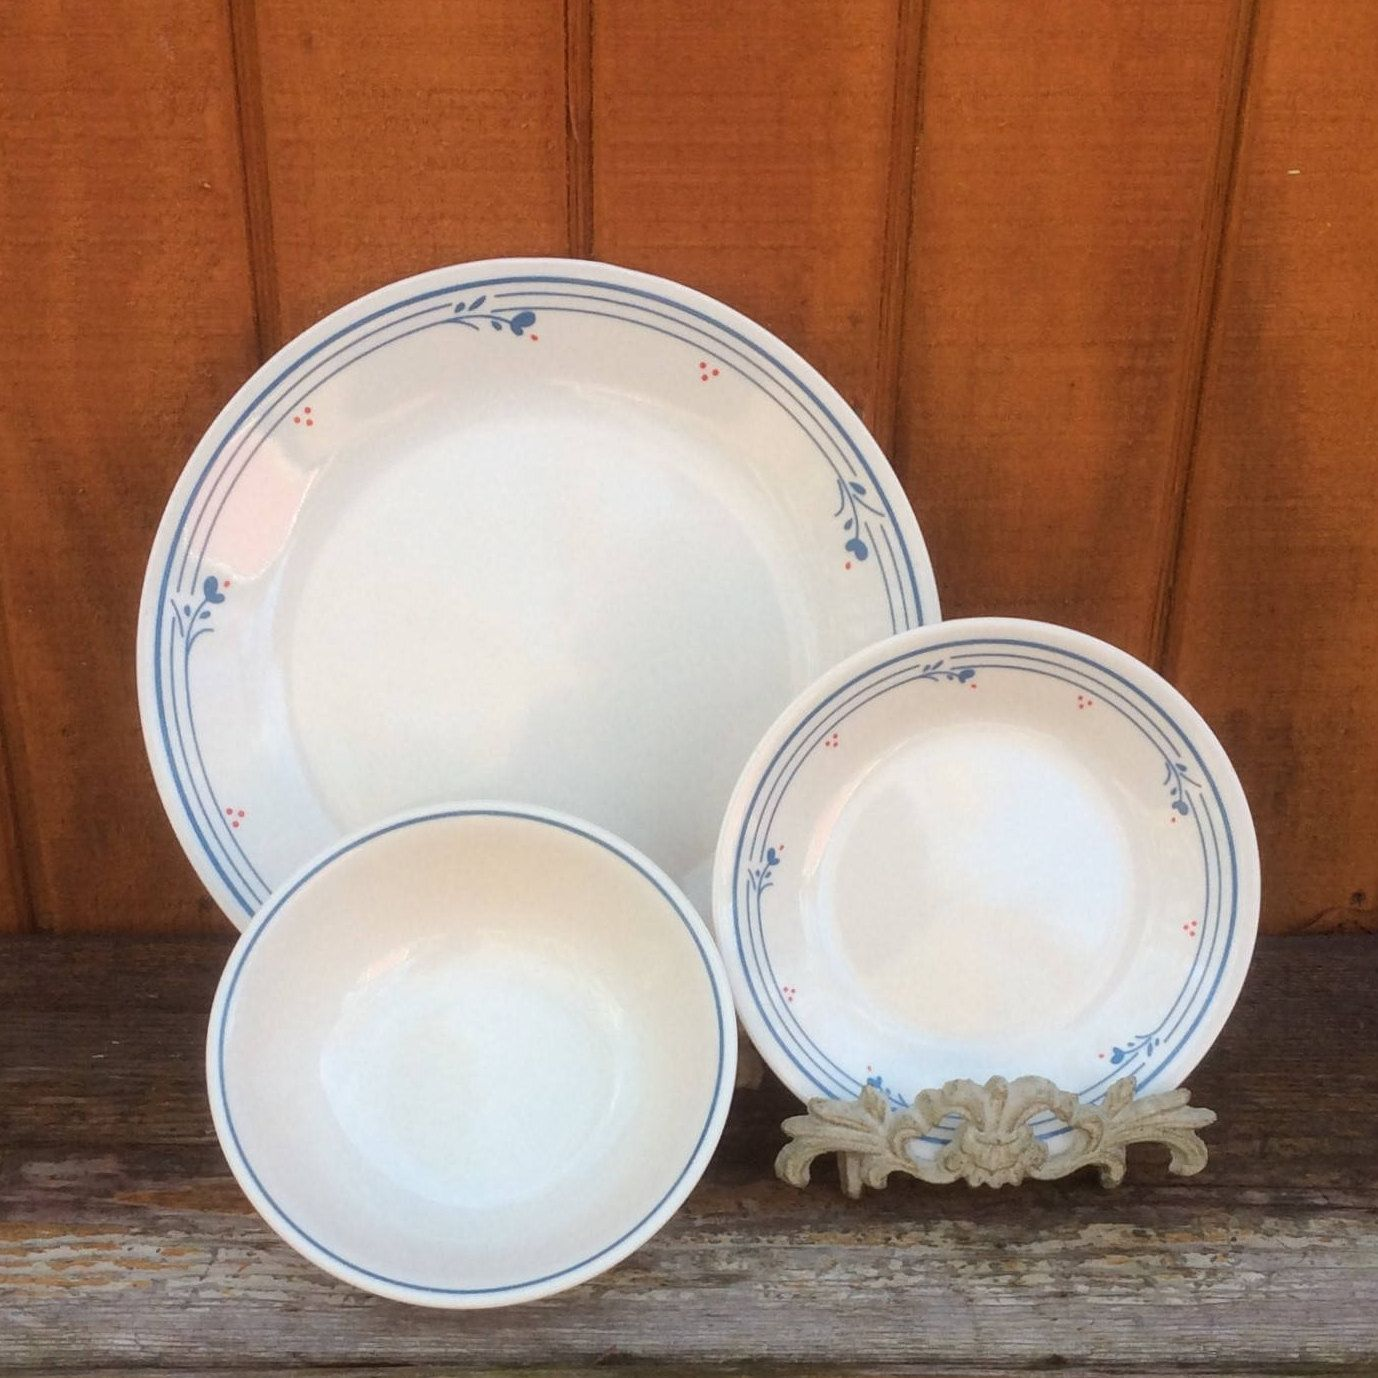 Country Violets Dishes | Corelle PYREX Corning | Dinner Plates Cereal Bowls u0026 Bread and & Country Violets Dishes | Corelle PYREX Corning | Dinner Plates ...